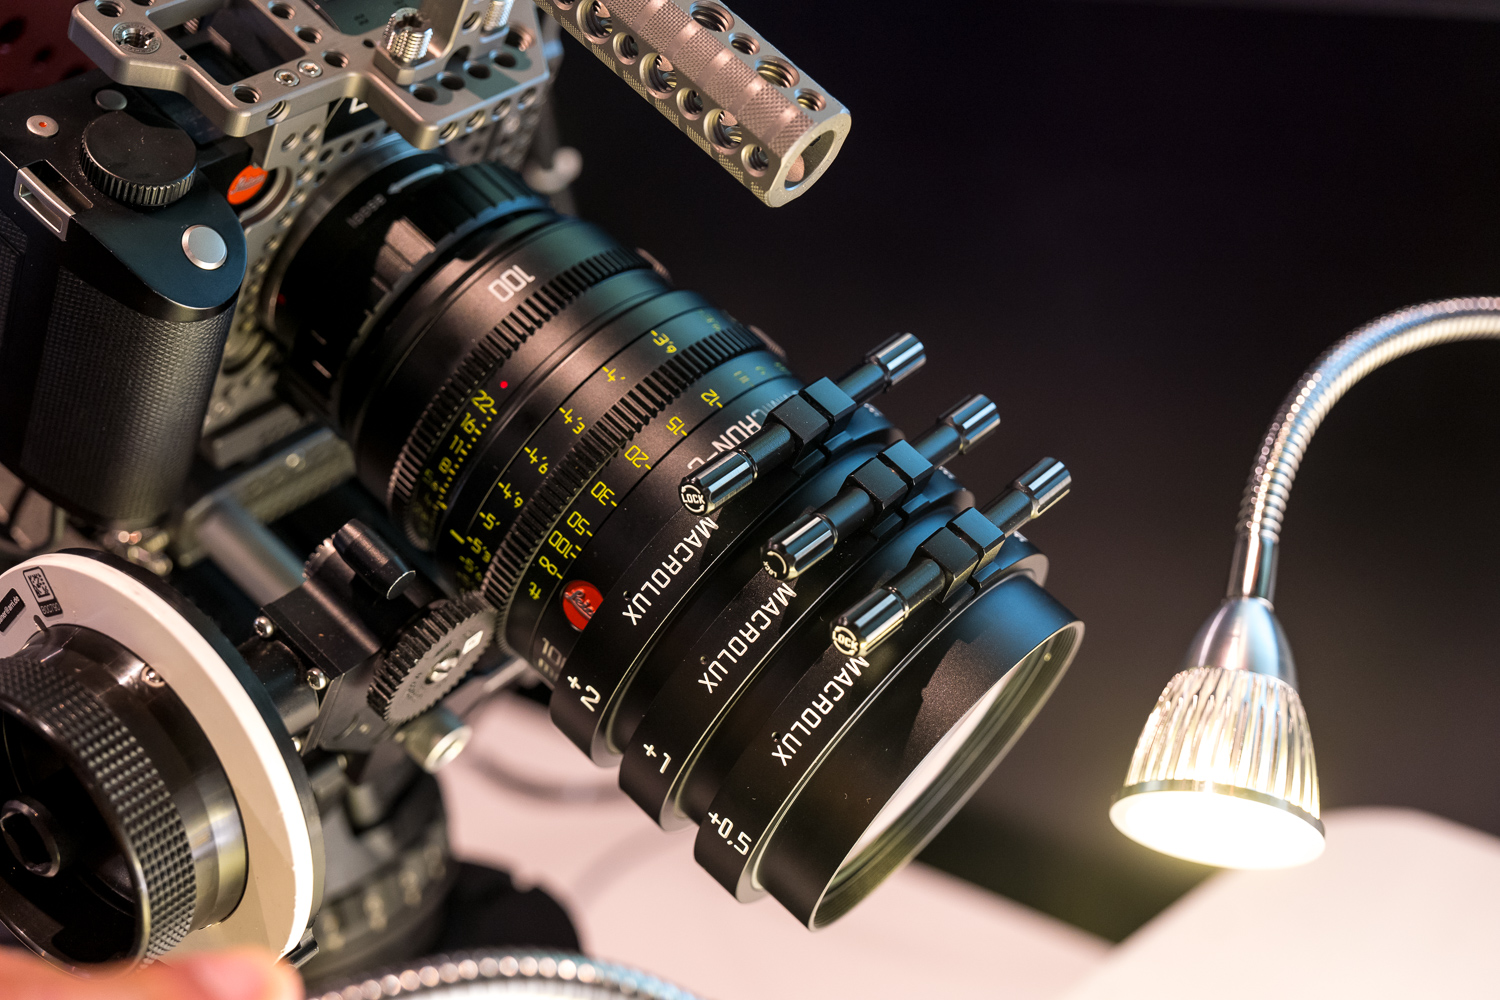 Leica 100mm Summicron-C with stacked MacroLux adapters on Leica SL with PL  mount adapter and LockCircle Metal Jacket